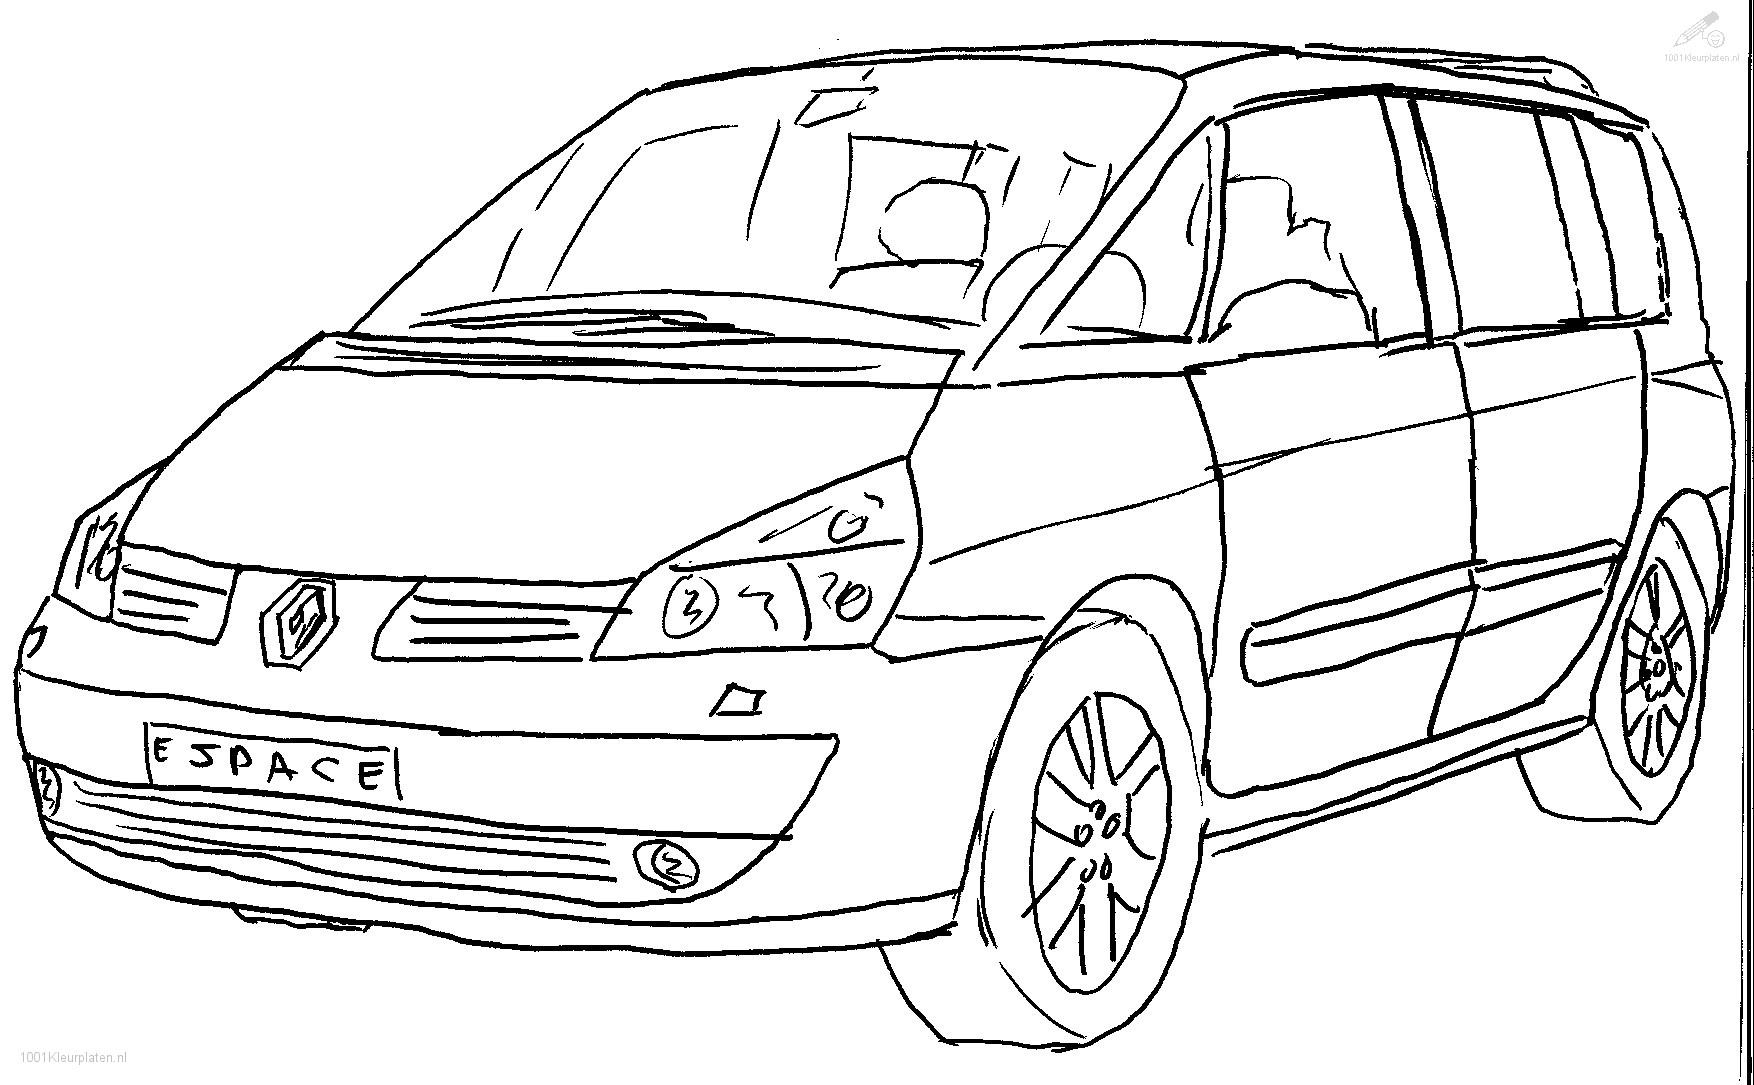 renault lego coloring pages - photo#7